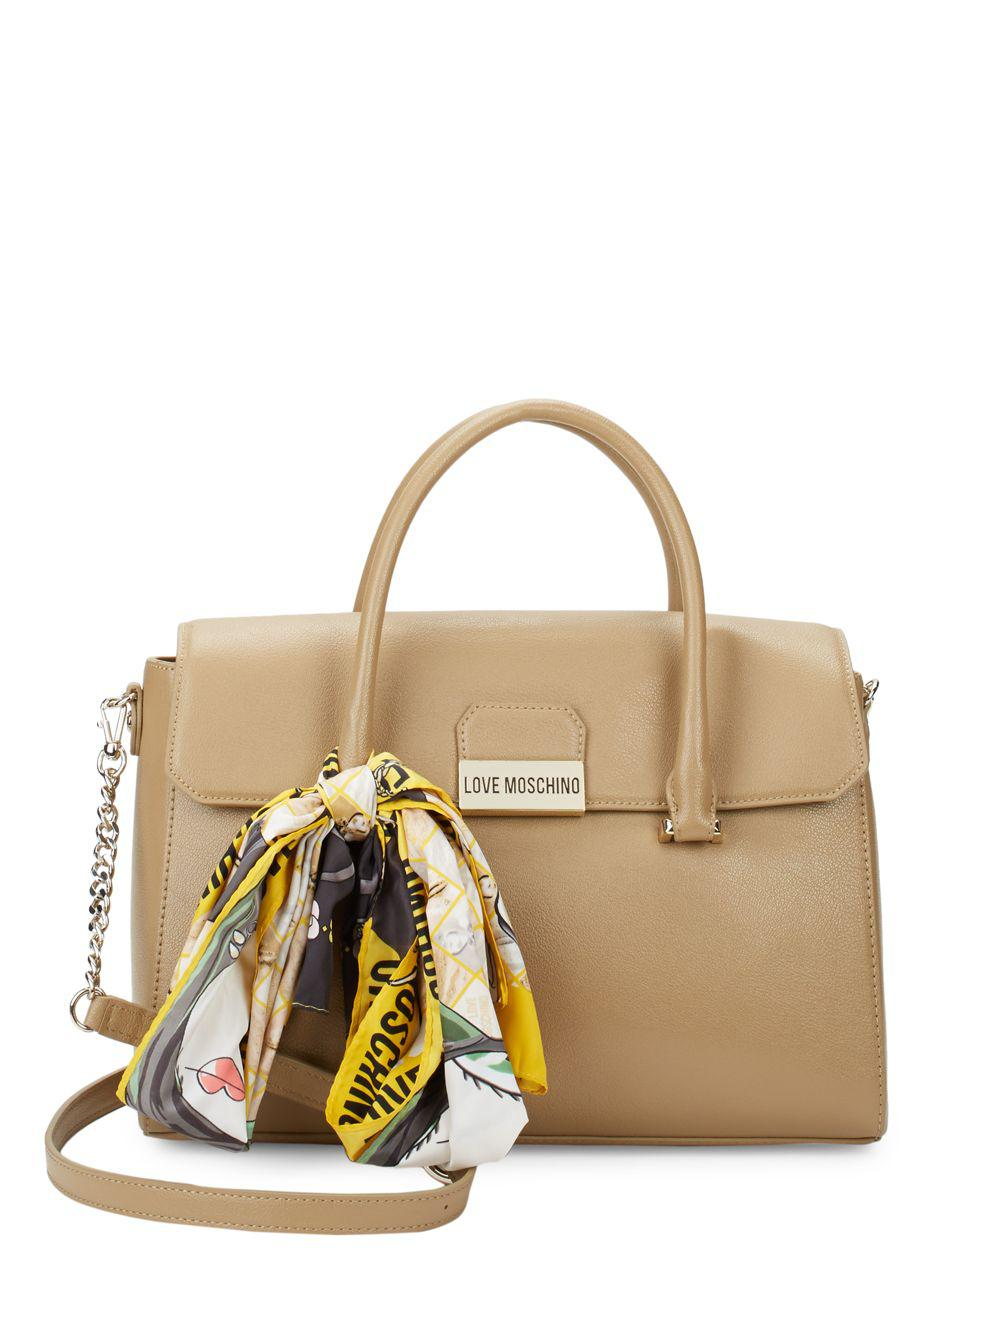 Discount Very Cheap Really Online Moschino Fold over satchel Discount Footaction Free Shipping Prices Clearance Online 384CEa